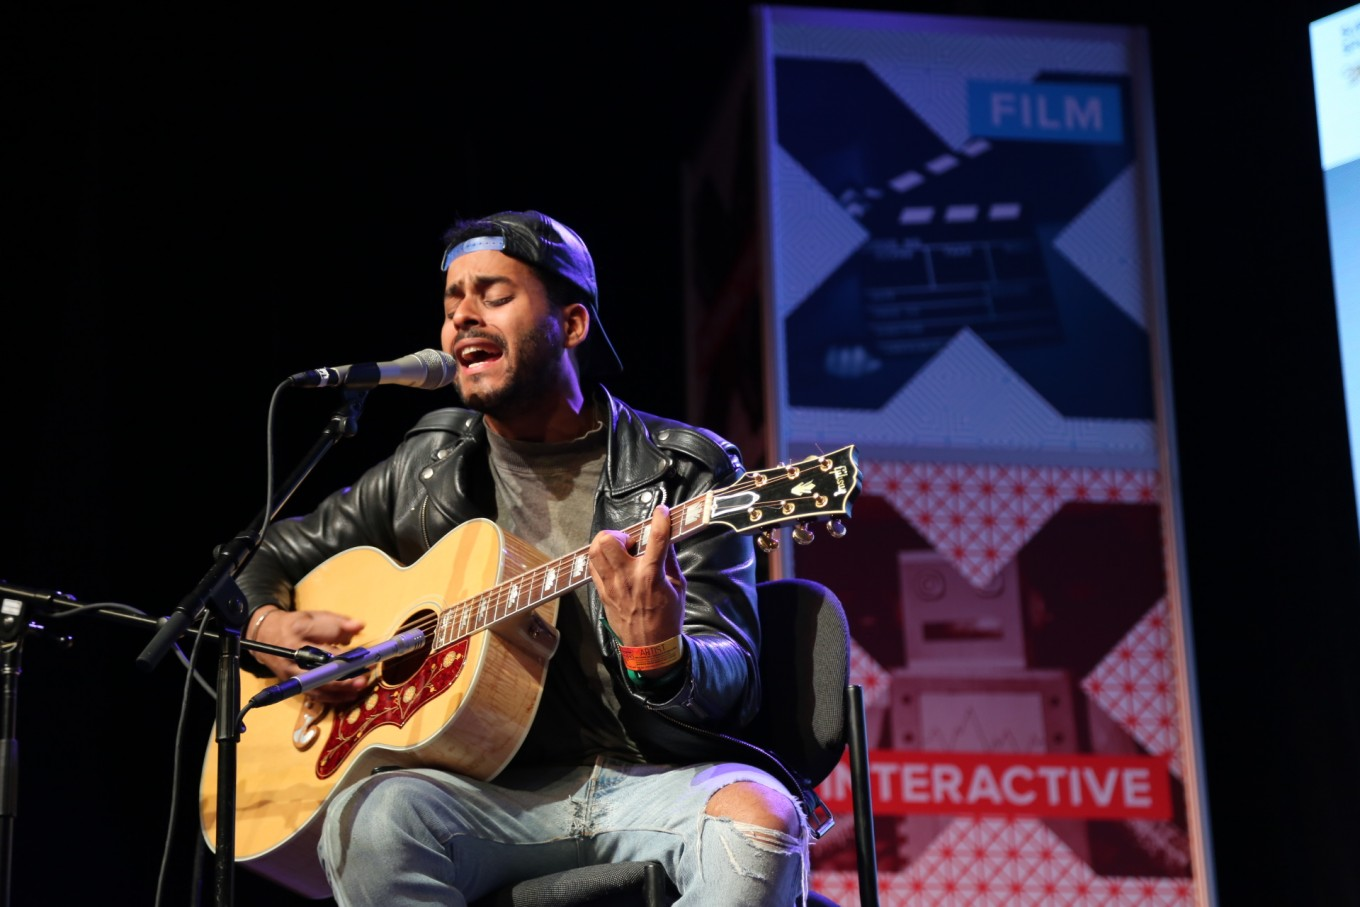 Twin Shadow performs first at the Public Radio Day Stage.